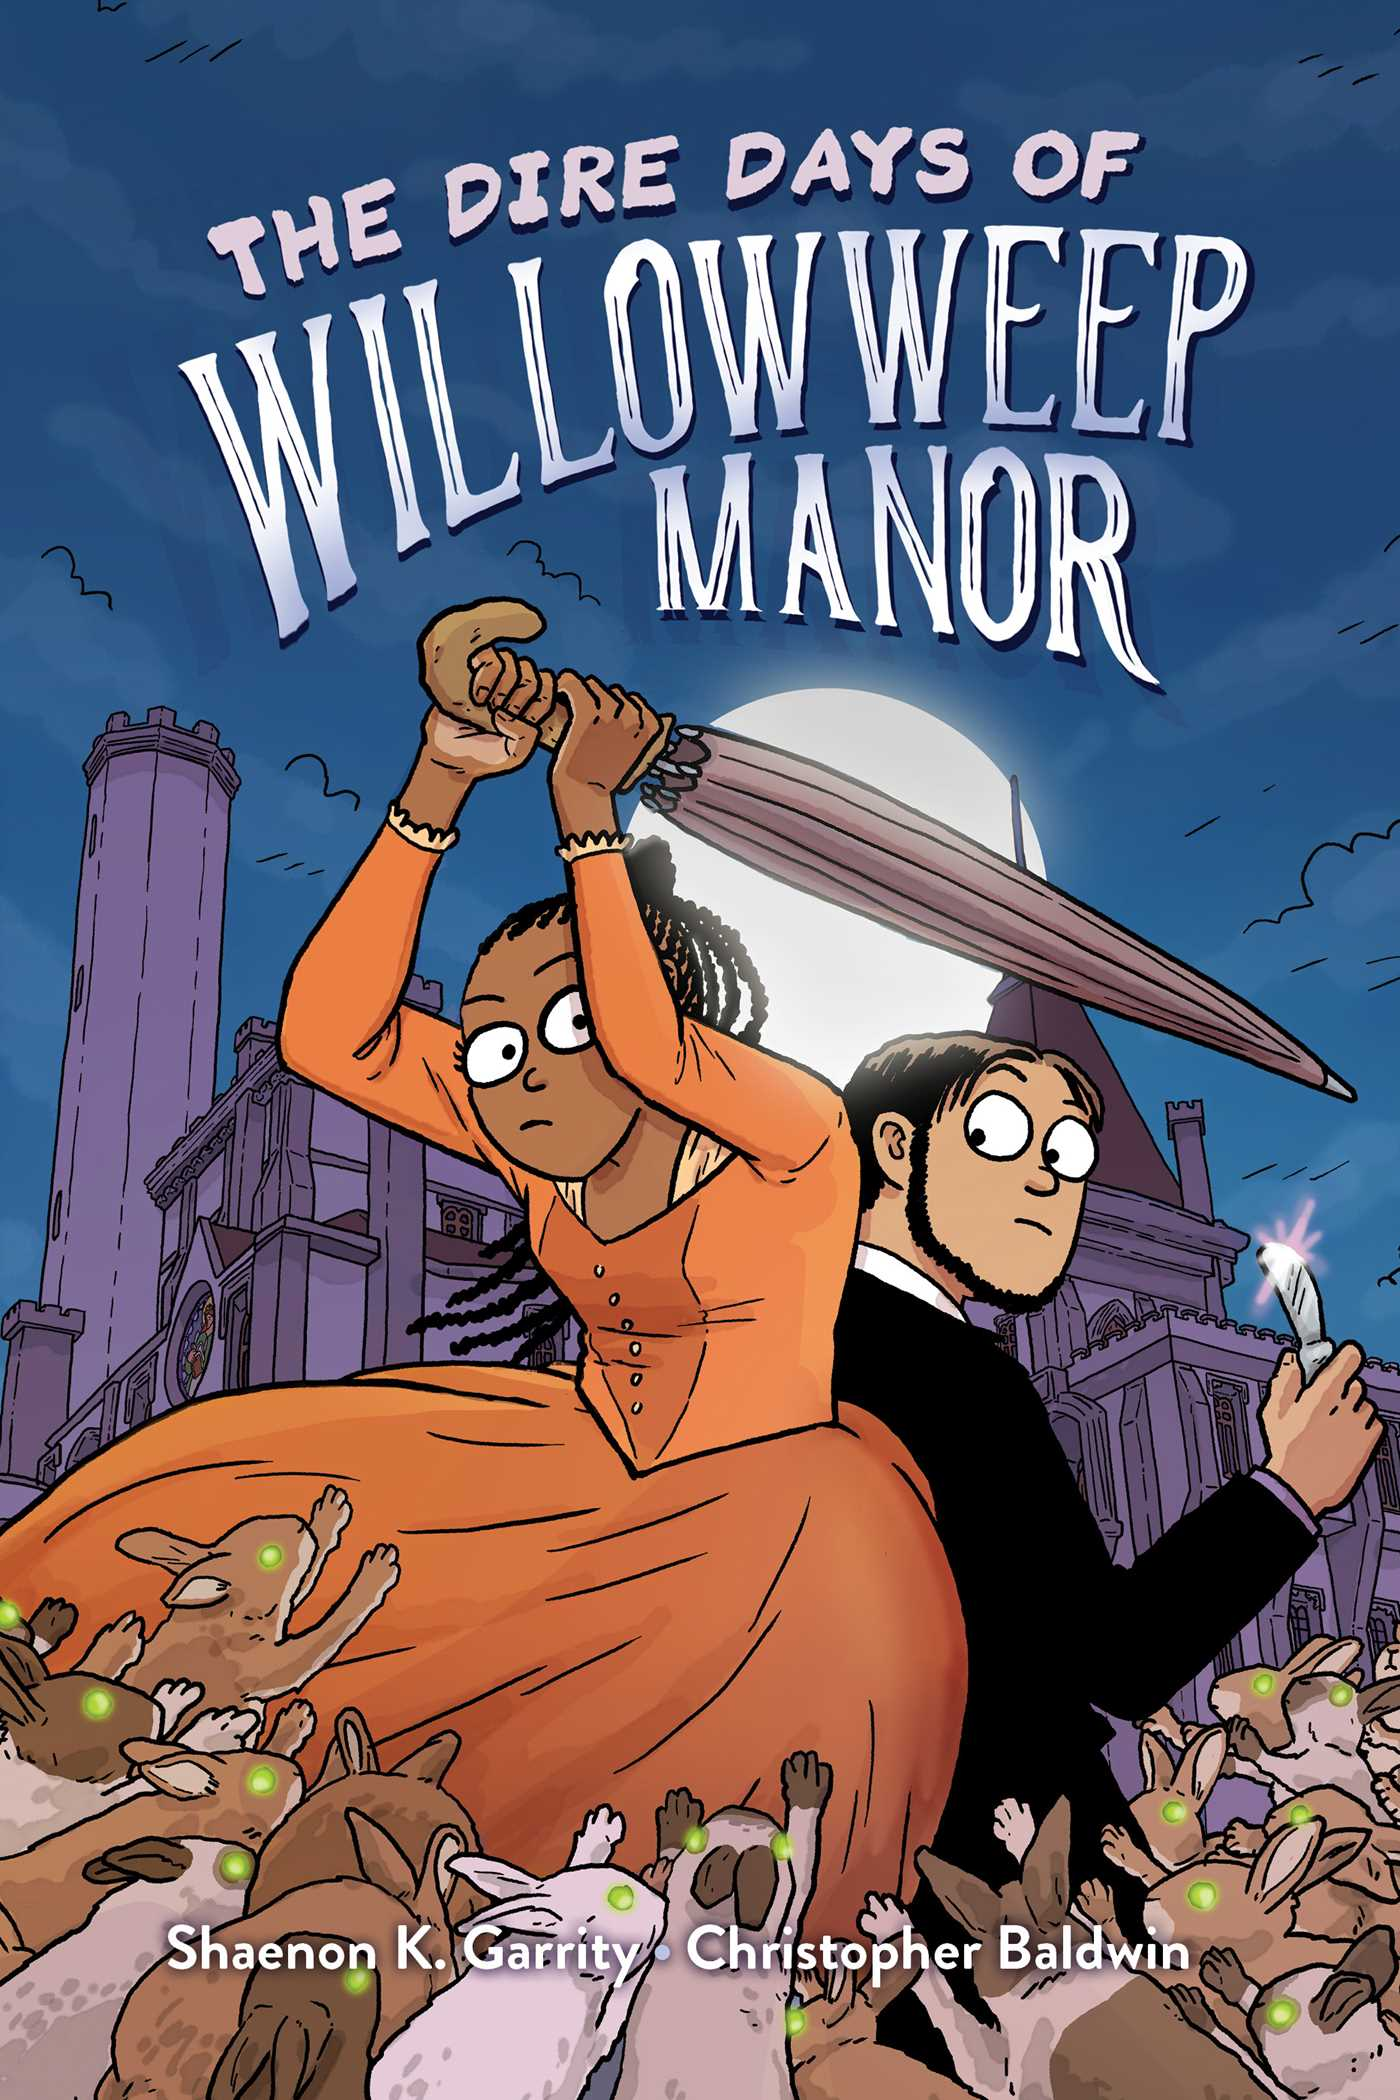 The Dire Days of Willowweep Manor | Book by Shaenon K. Garrity, Christopher  Baldwin | Official Publisher Page | Simon & Schuster UK